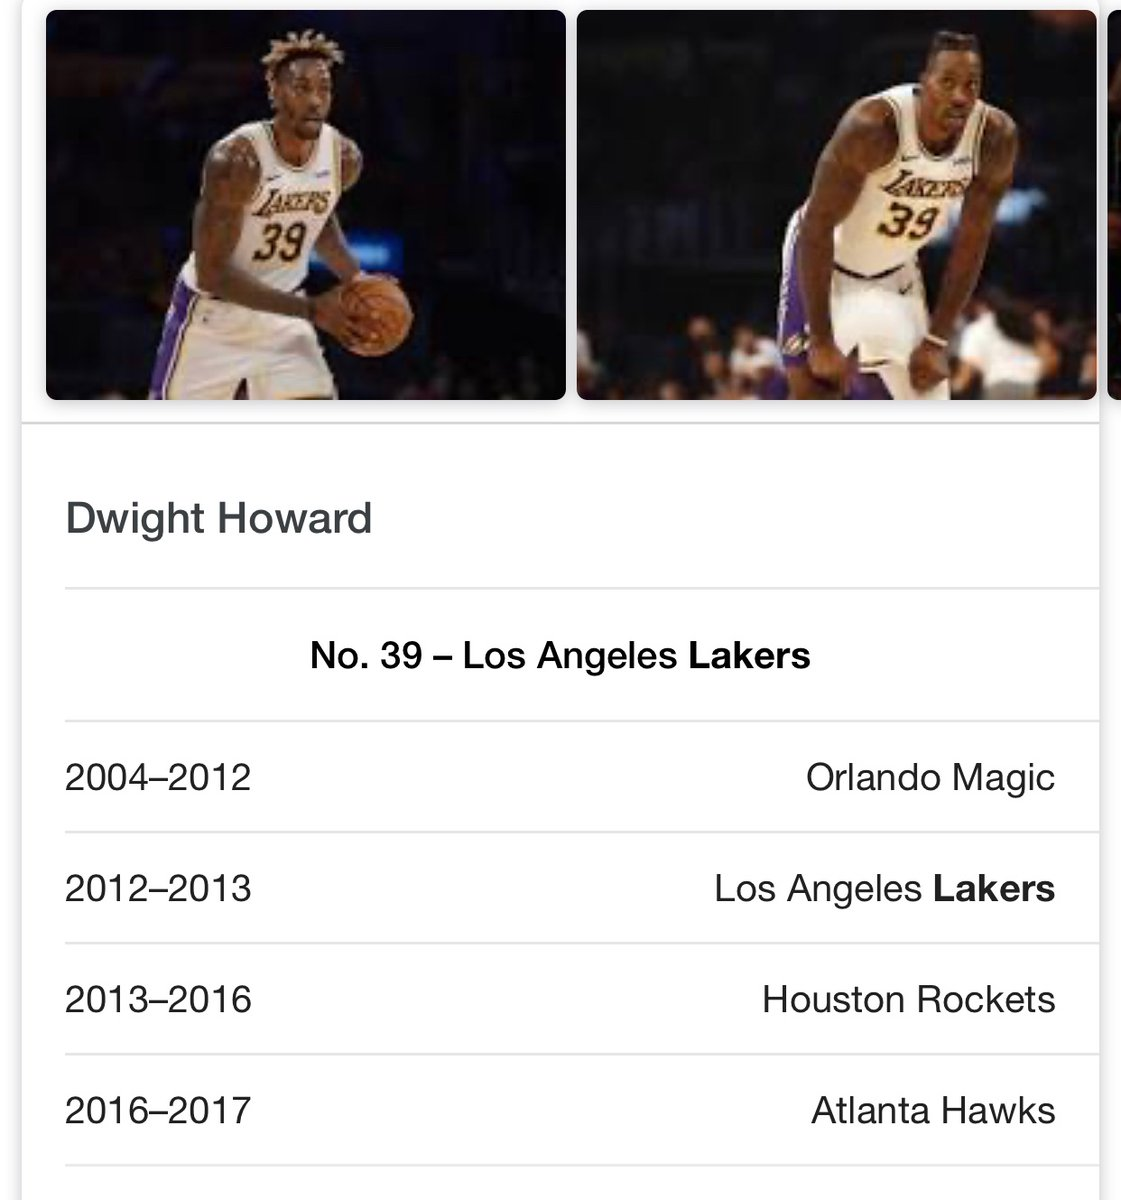 Nope he tore it in 2013 my guy. Dwight Howard was on the team and as you can see in the pic it was the 2012-2013 nba seasonpic.twitter.com/uc7Q0TOUp7